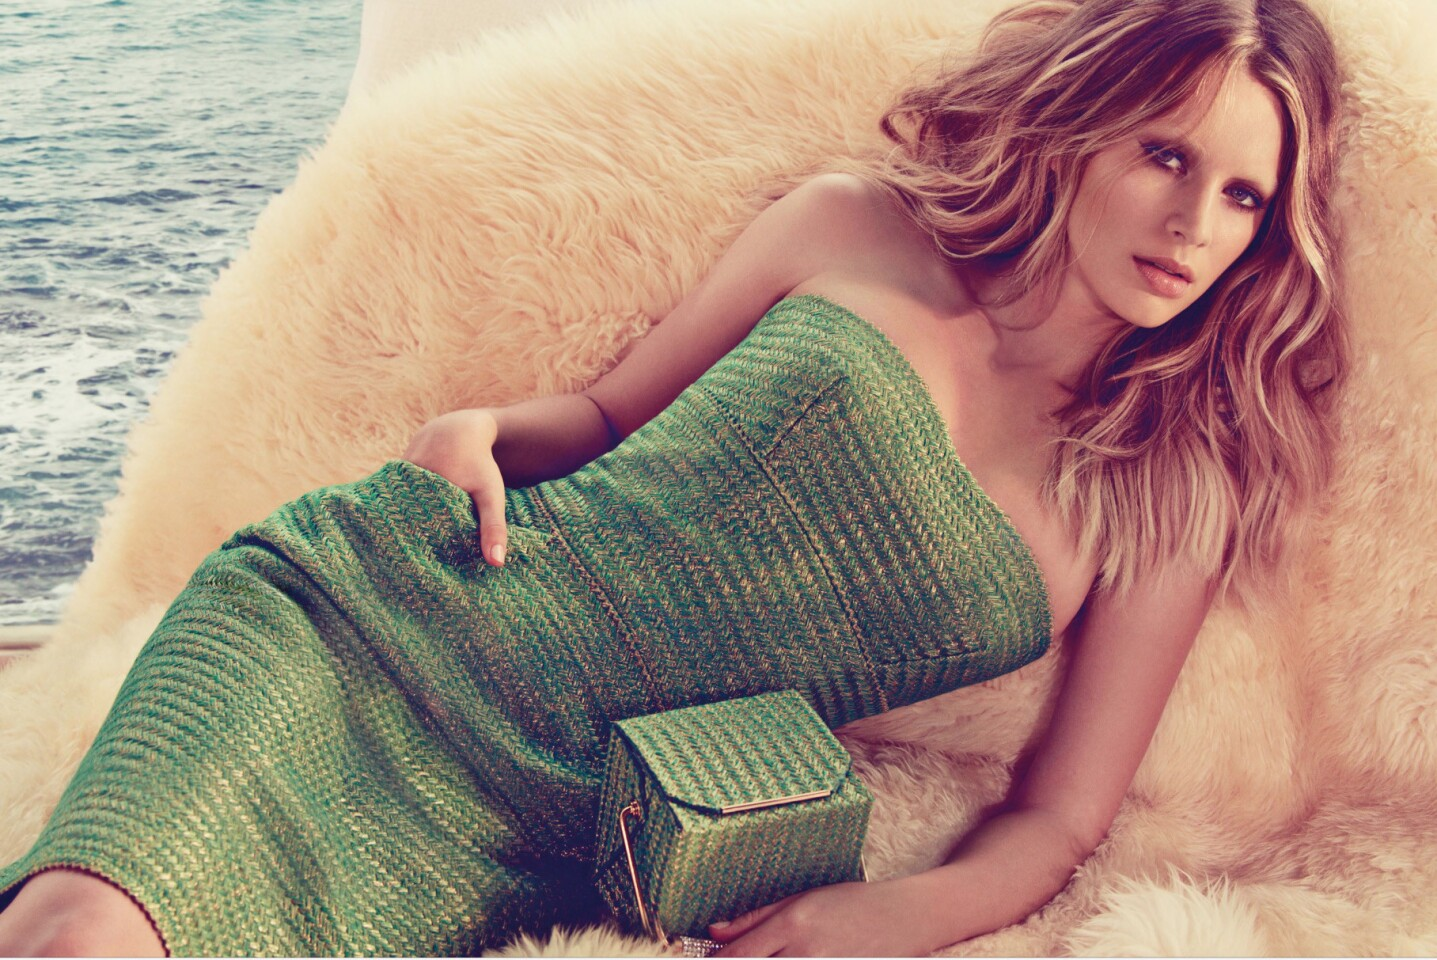 Ermanno Scervino campaign featuring Dylan Penn, daughter of Oscar winner Sean Penn and actress Robin Wright.